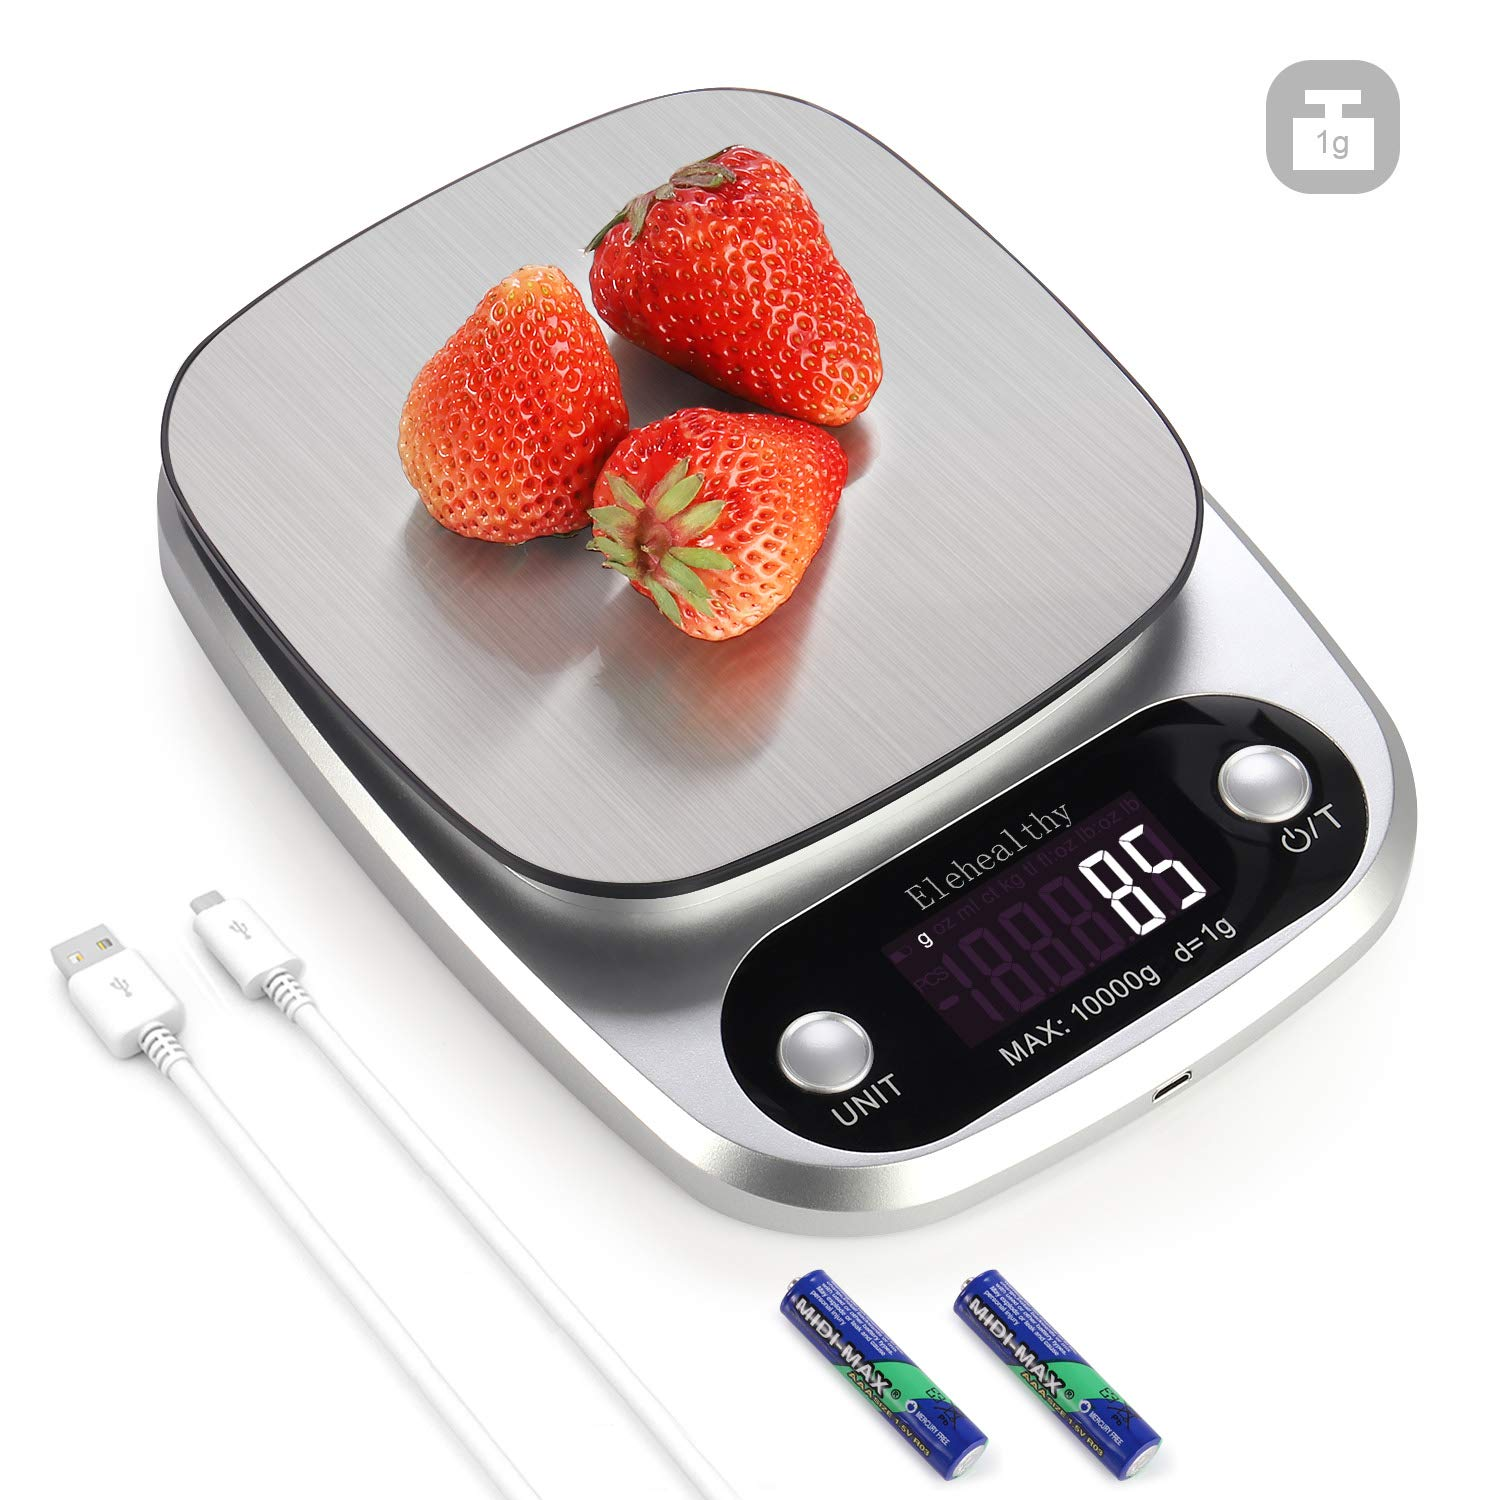 High Precision Kitchen Scale, Rechargable Food Scale Digital 10KG/22lbs,9 Measurement Units, Brushed Stainless Steel, 450mAh Lithium and 2AAA Batteries included(10kg/1g)